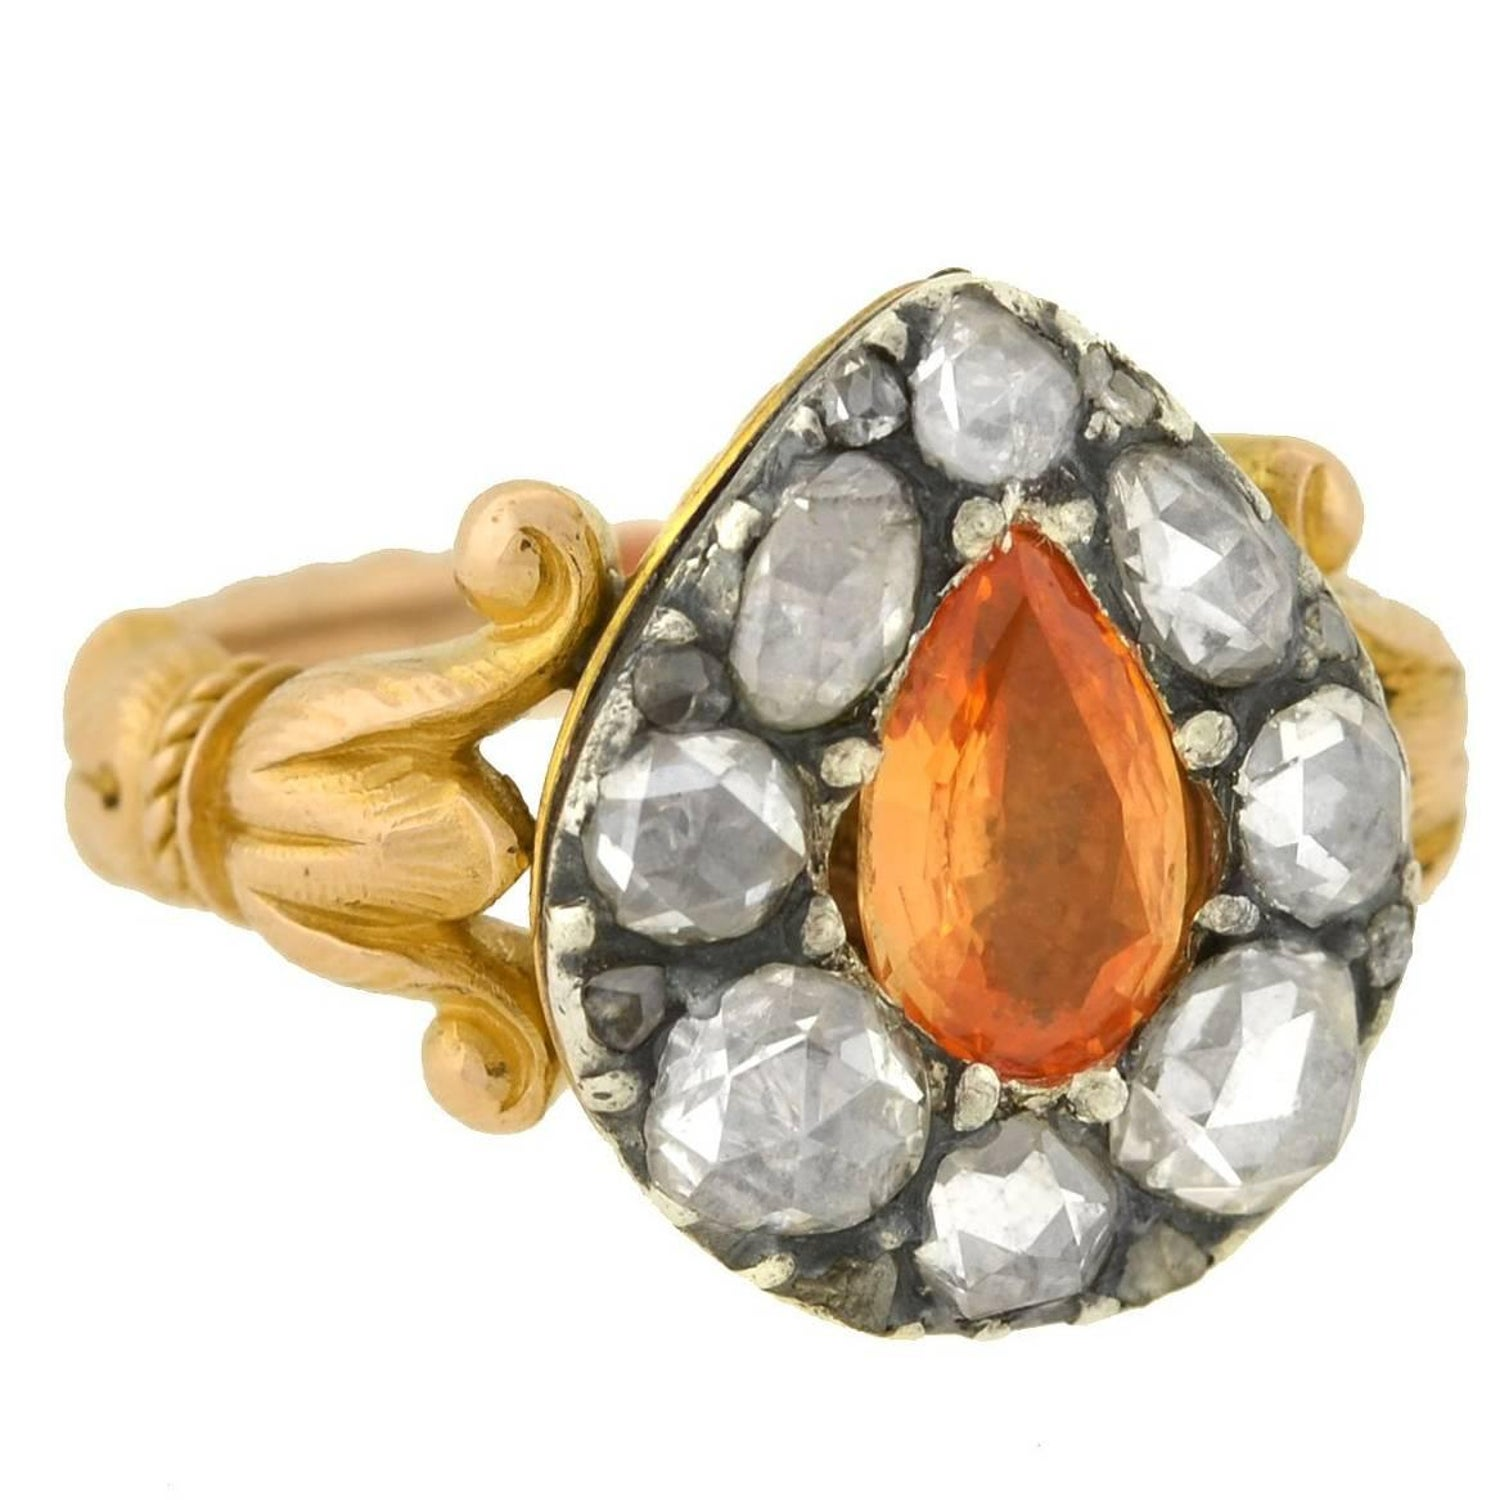 Georgian Imperial Topaz Rose Cut Diamond Ring For Sale at 1stdibs